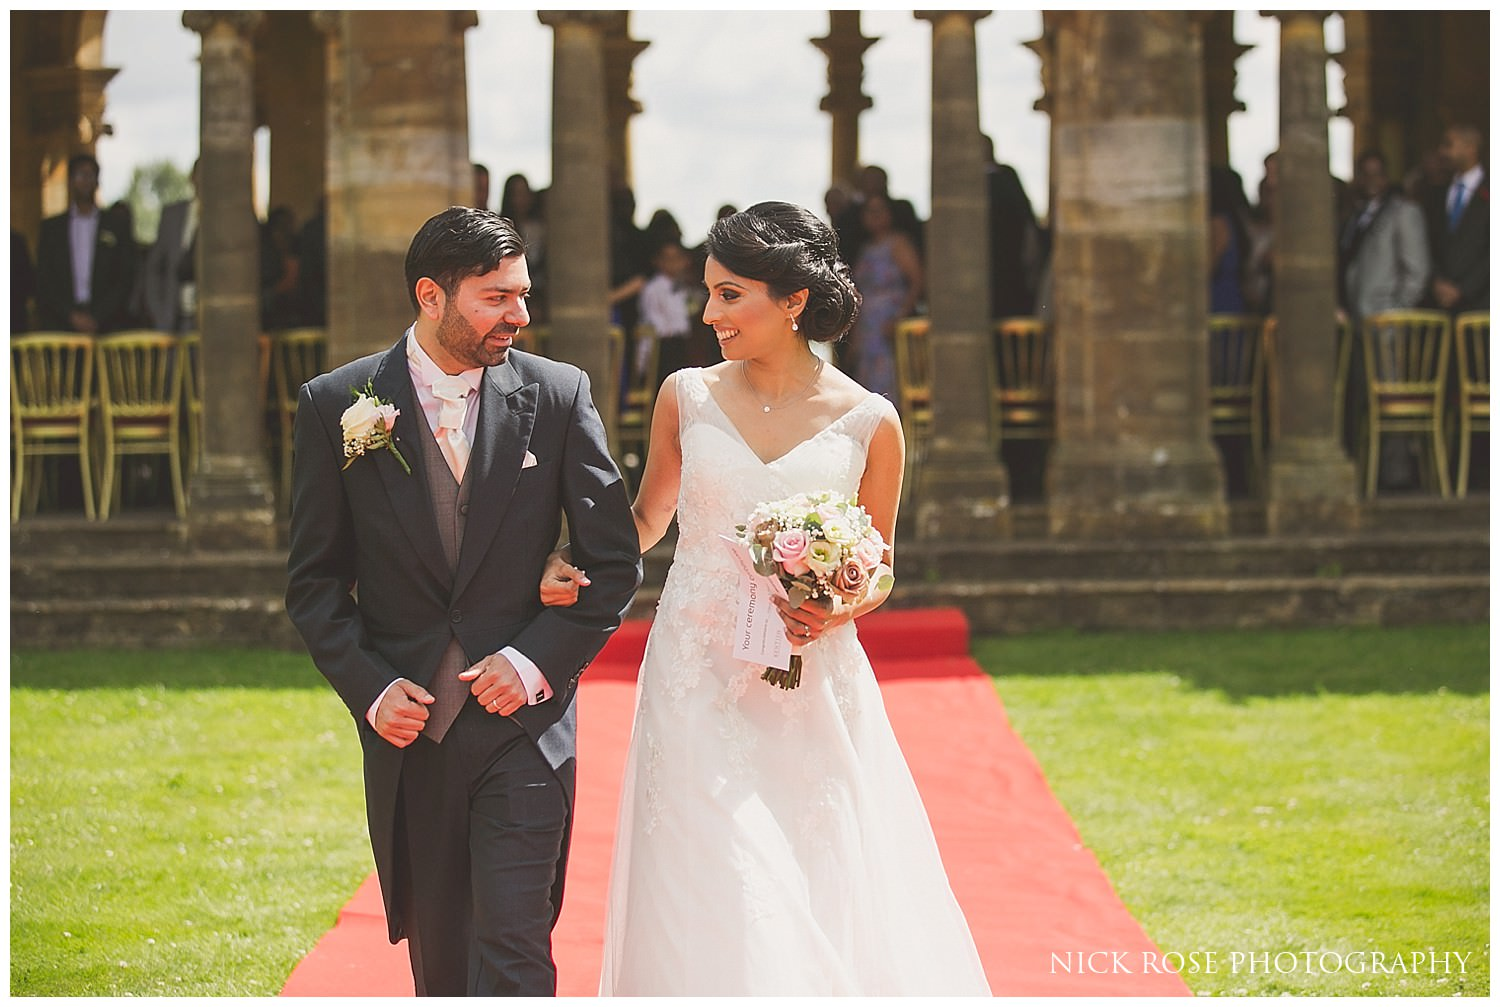 Bride and groom walking down the aisle after a wedding ceremony at Hever Castle Kent